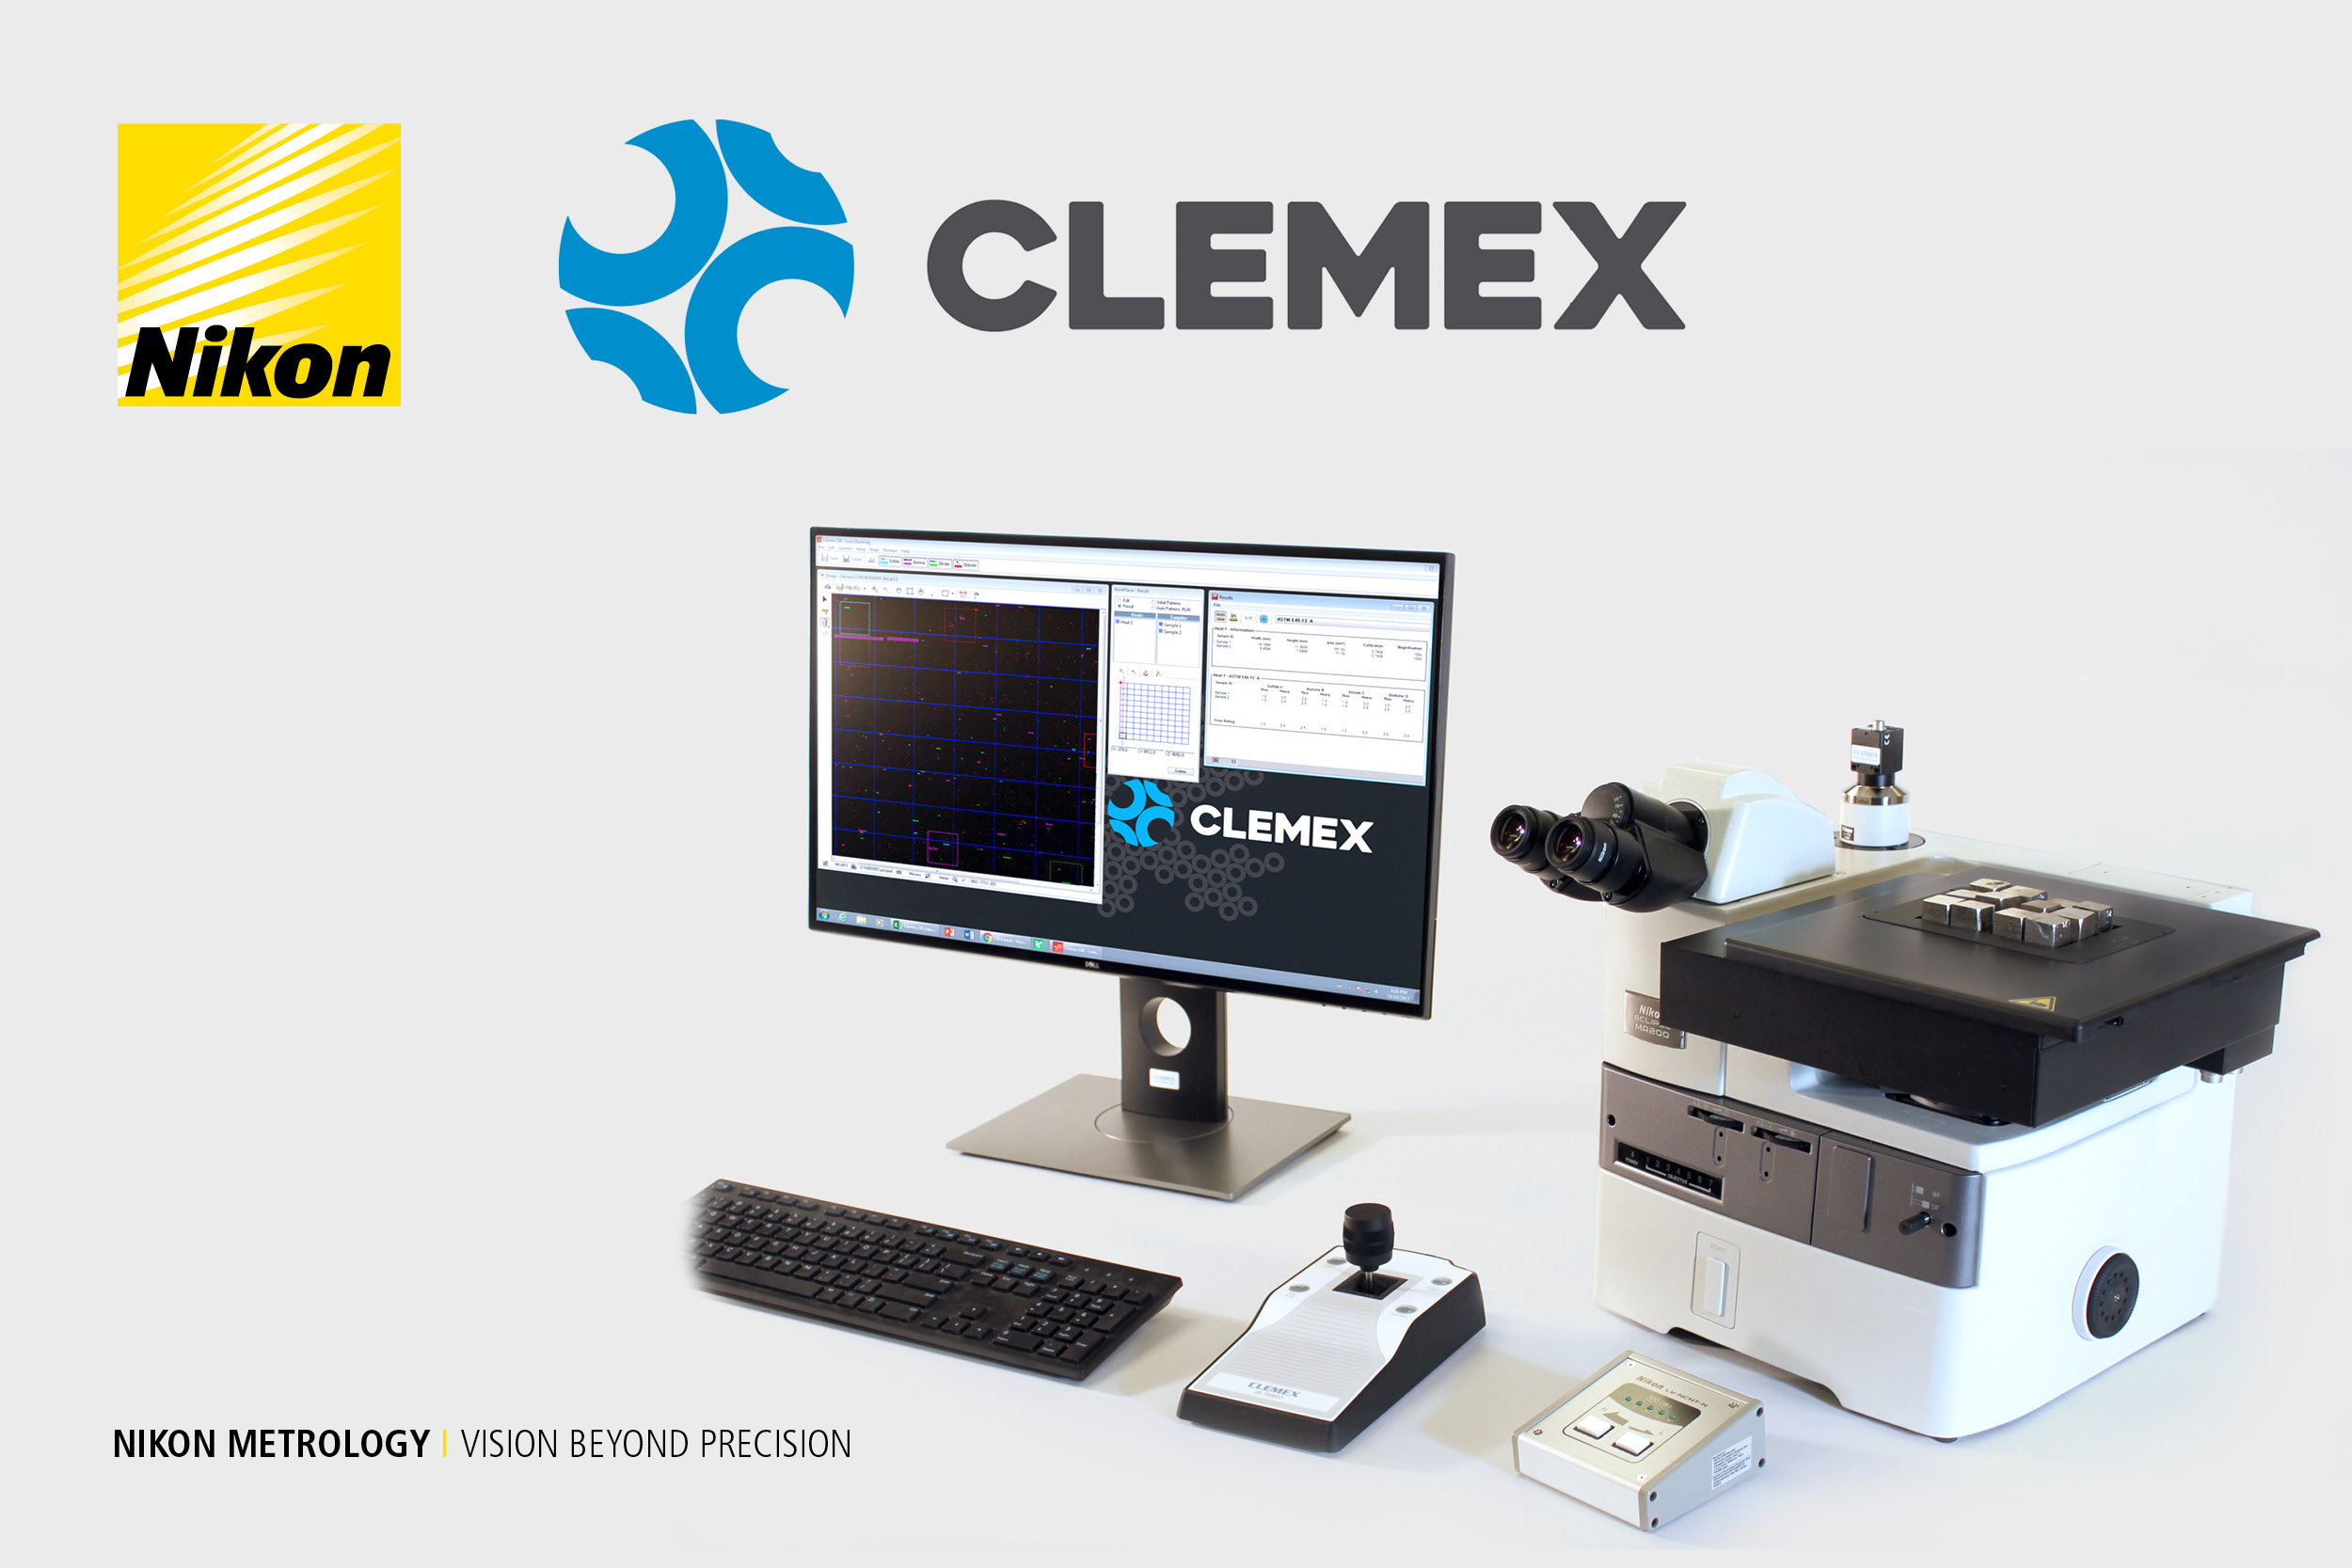 CLEMEX image analysis on NIKON microscopes | Feb 8th 2018 - 15:00 CET | 09:30 EST